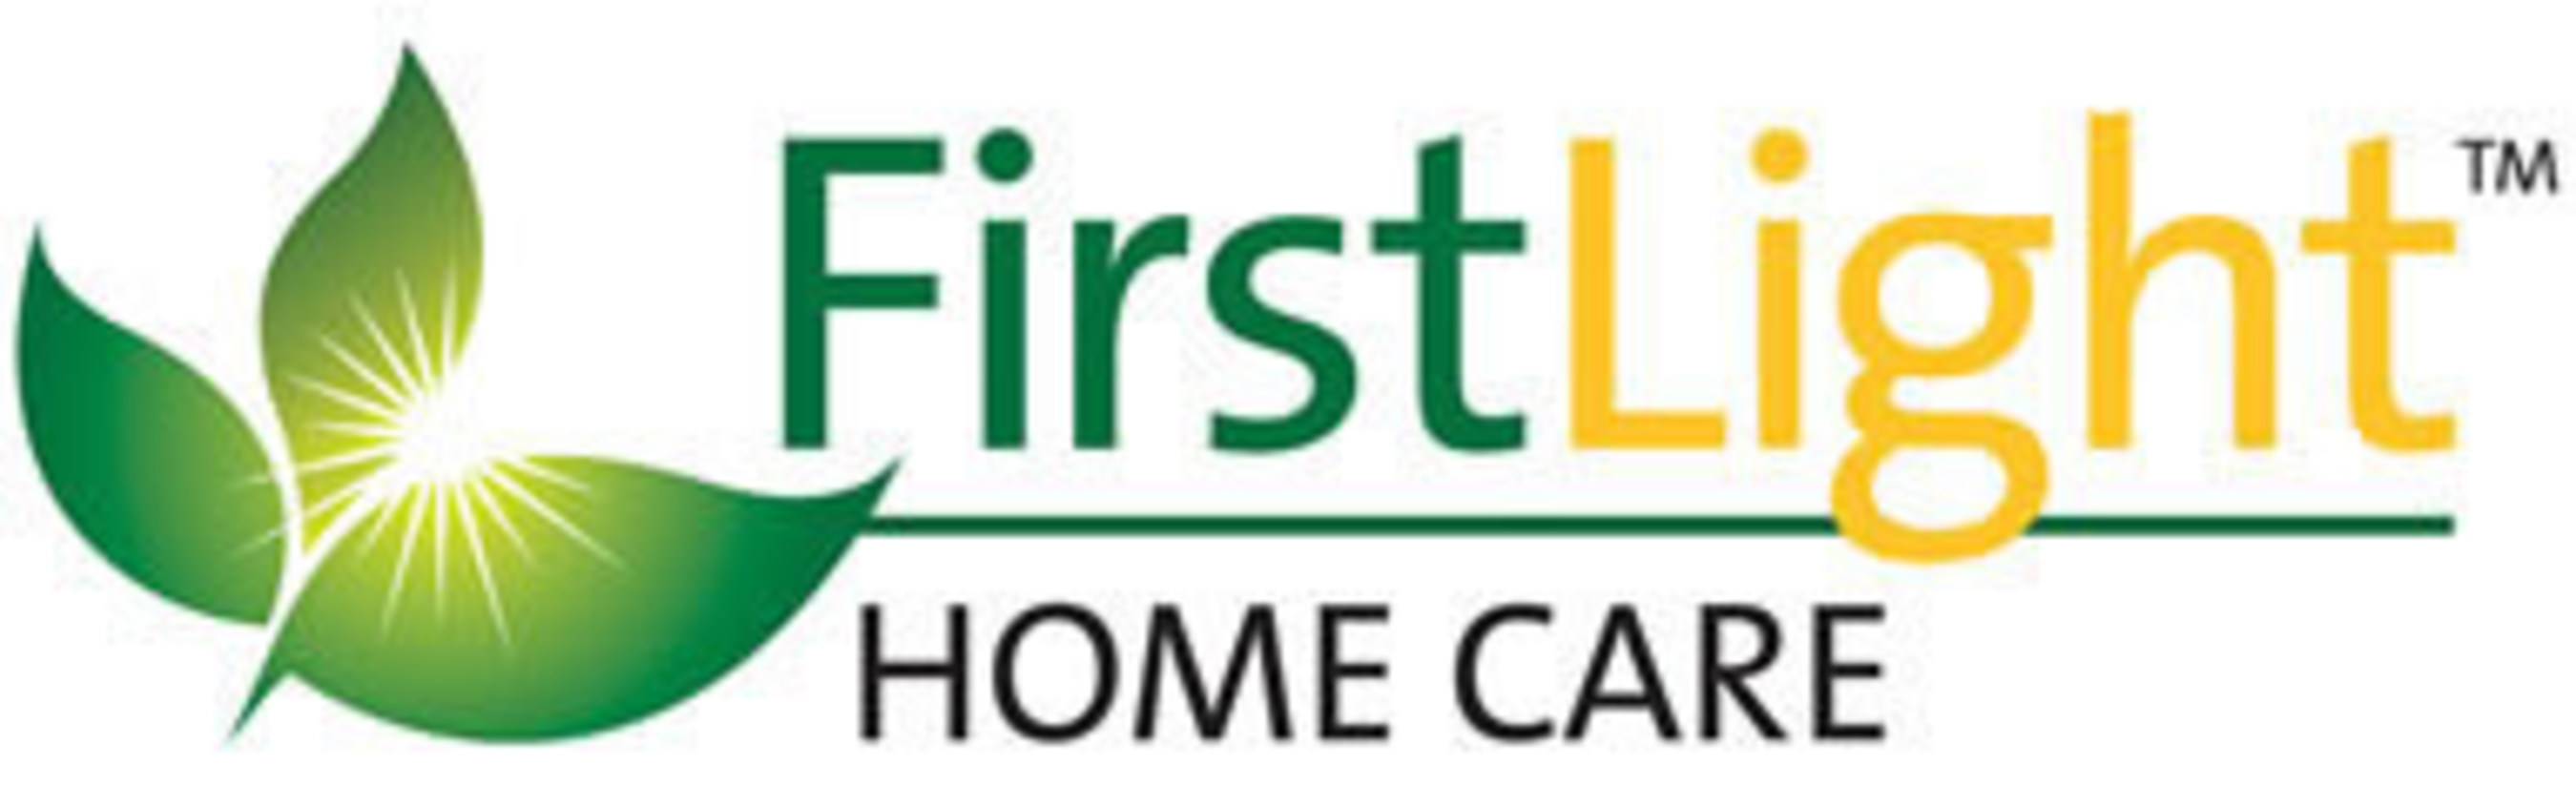 FirstLight HomeCare Announces Plans to Expand in Dallas - Fort Worth Area